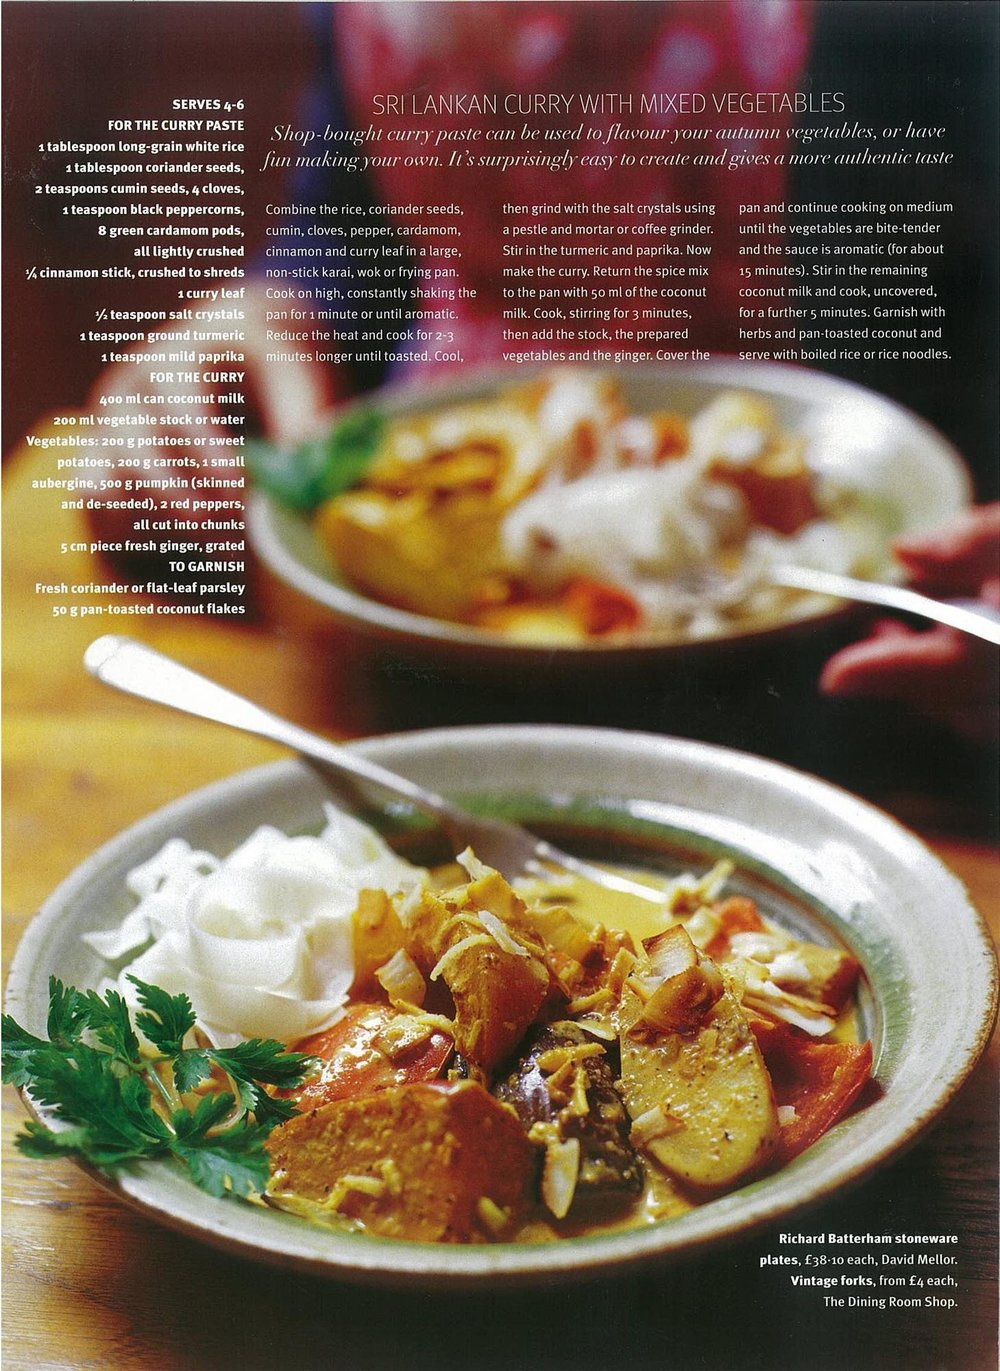 29.HomesAndGardensRichardJungClareFergusonAliBrownHarvestRecipesSriLankanCurry.jpg